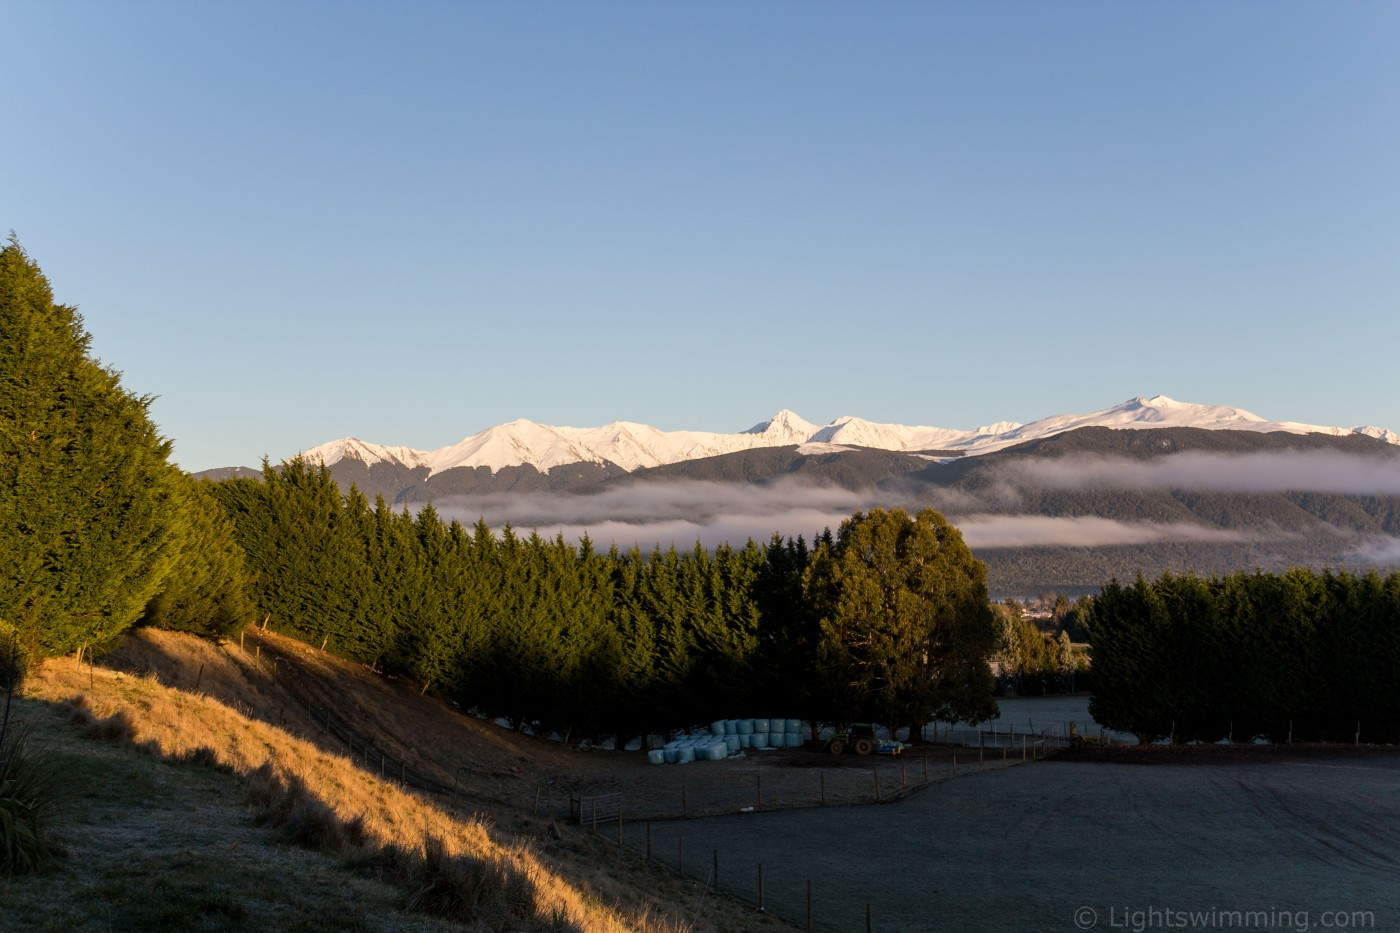 looking from our accommodation towards Lake Te Anau (screened by the trees), with the mountains behind